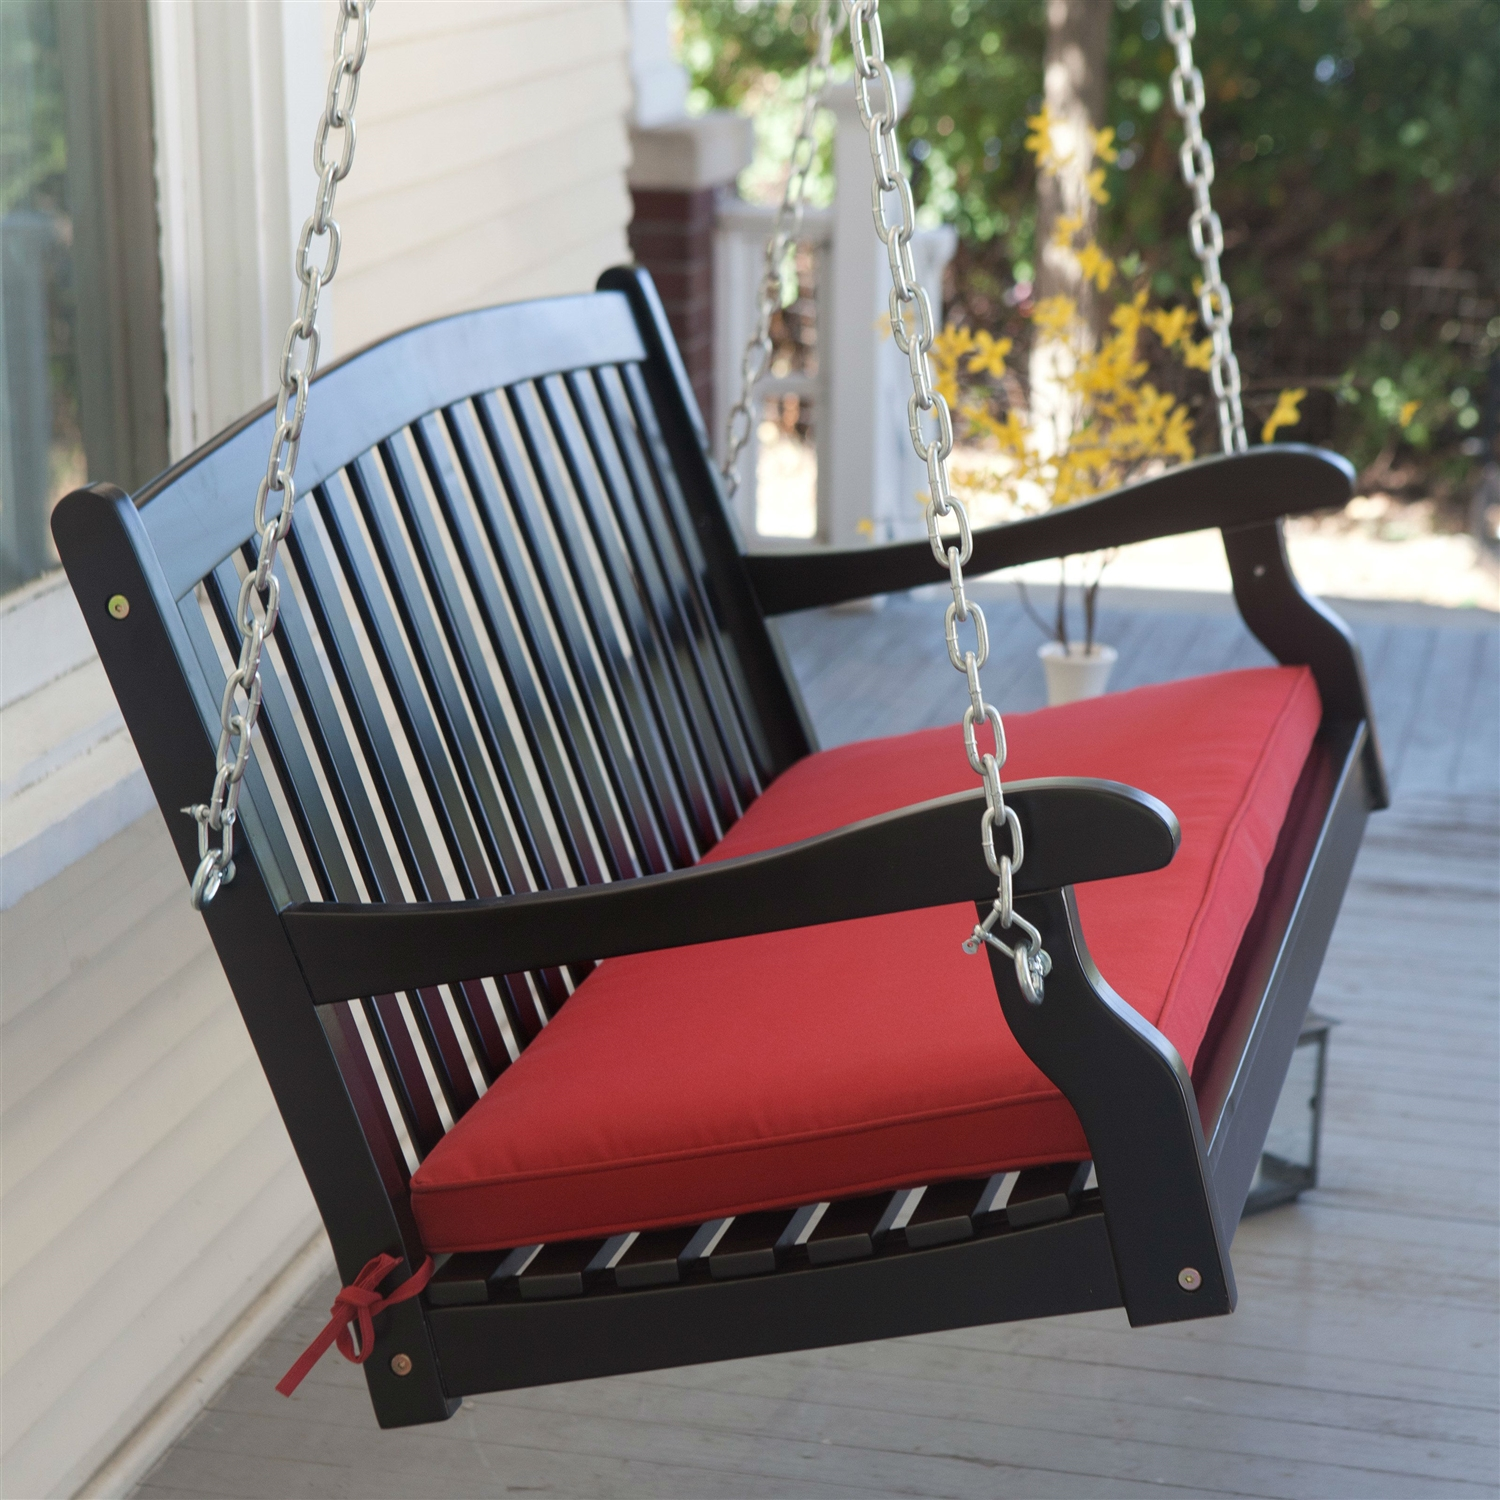 chair resin hanging chains wicker p ceiling bench swing tree black wchains hanger patio porch w